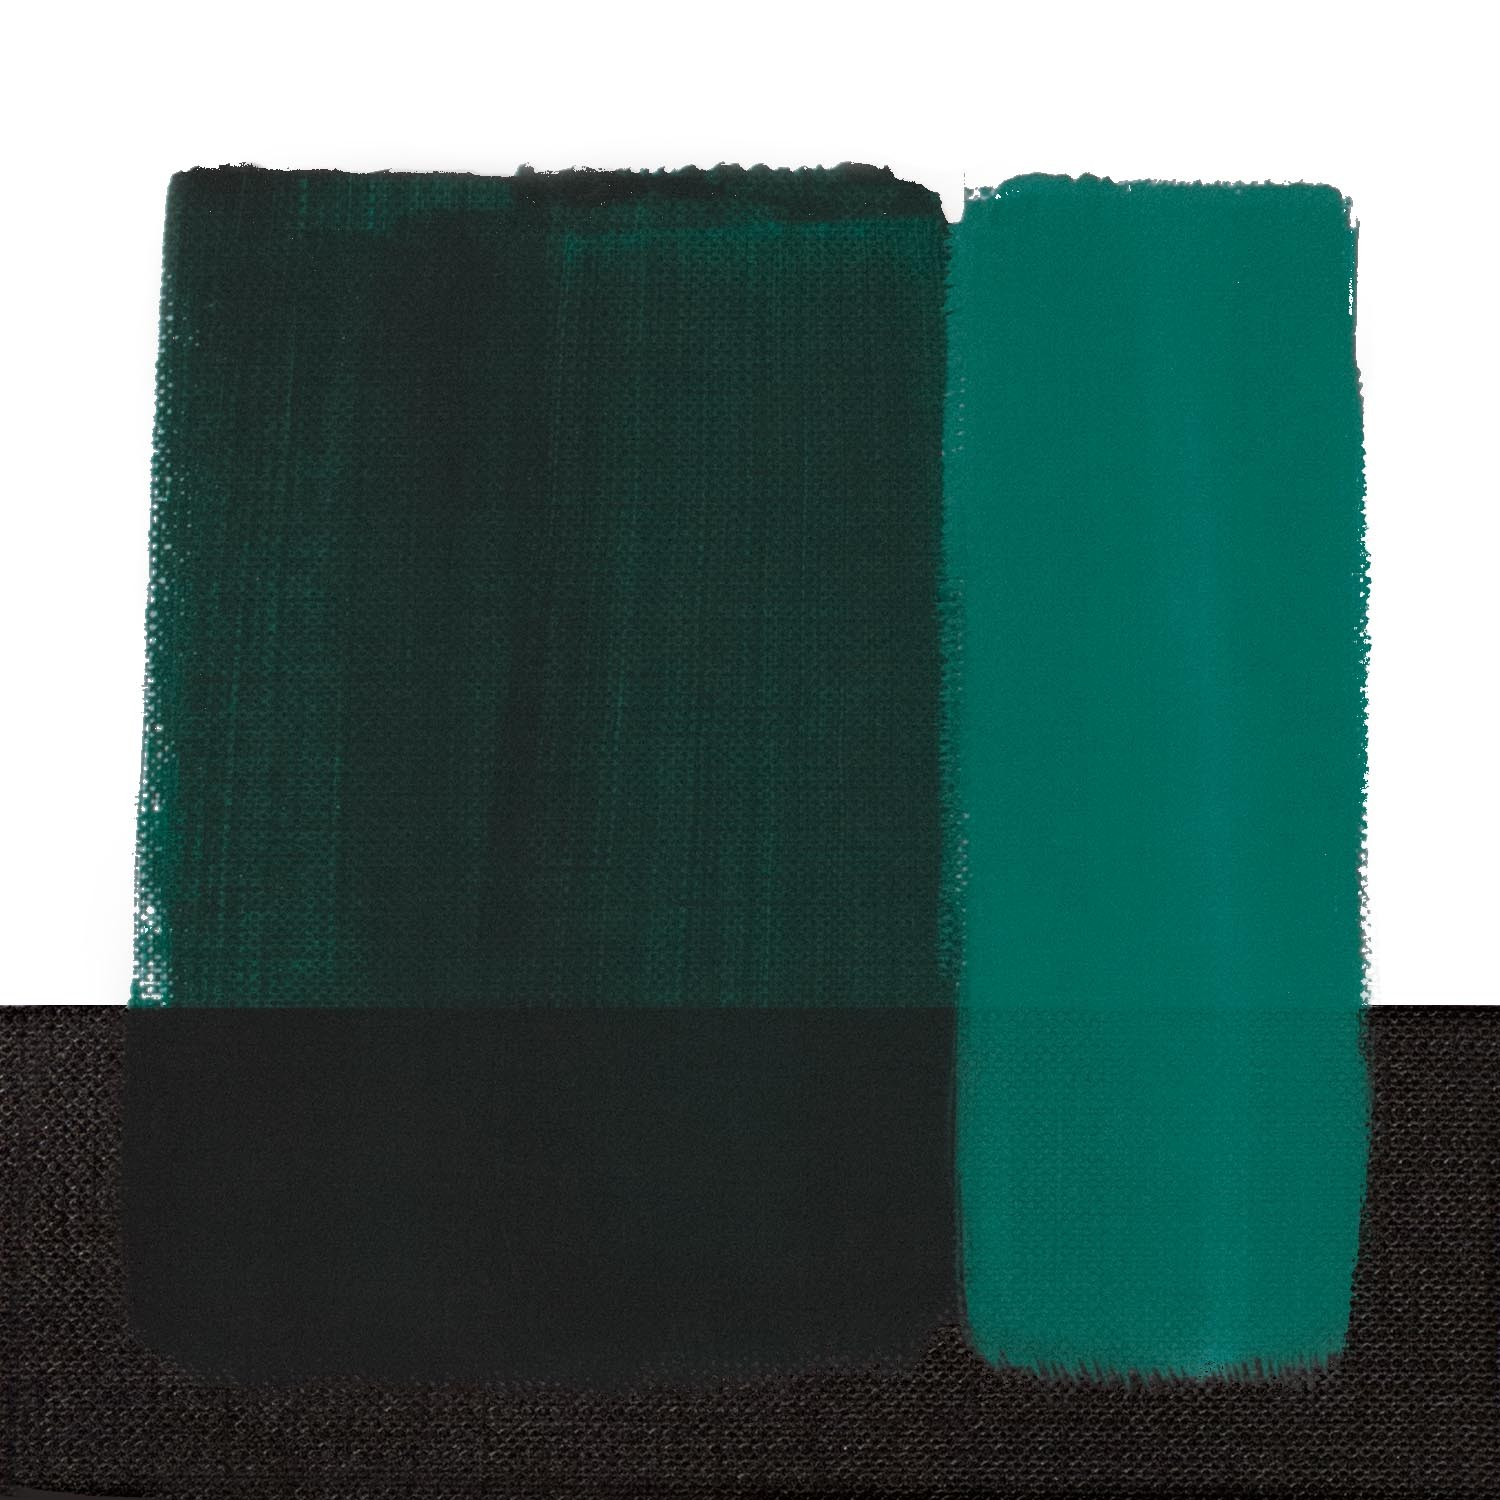 Phthalo Blue Green 410